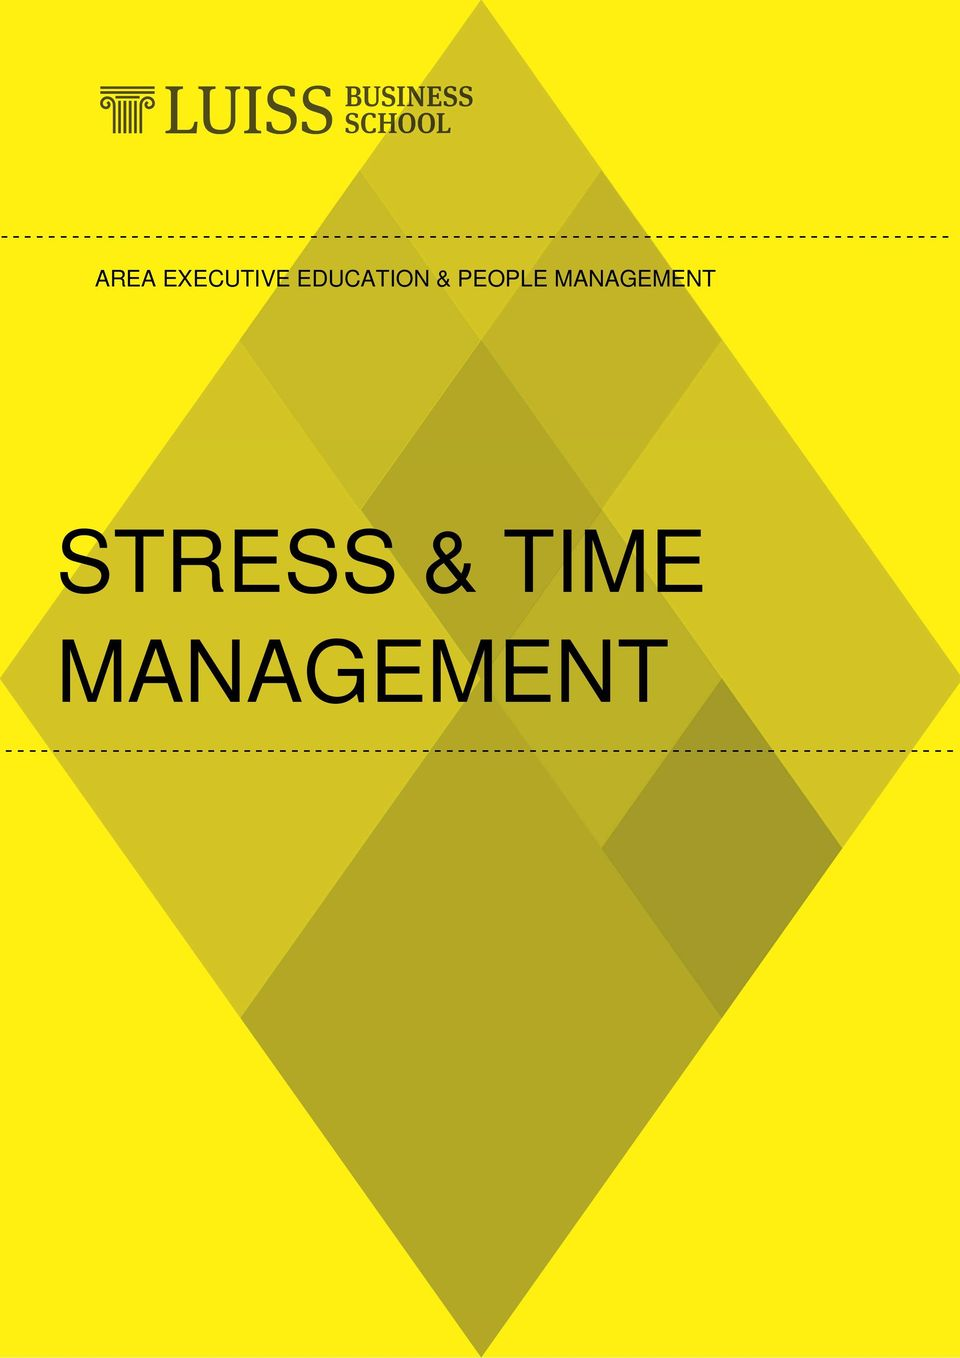 MANAGEMENT STRESS & TIME MANAGEMENT  - - - - - - - - - - - - - - - - - - - - - - - - - - - - - -